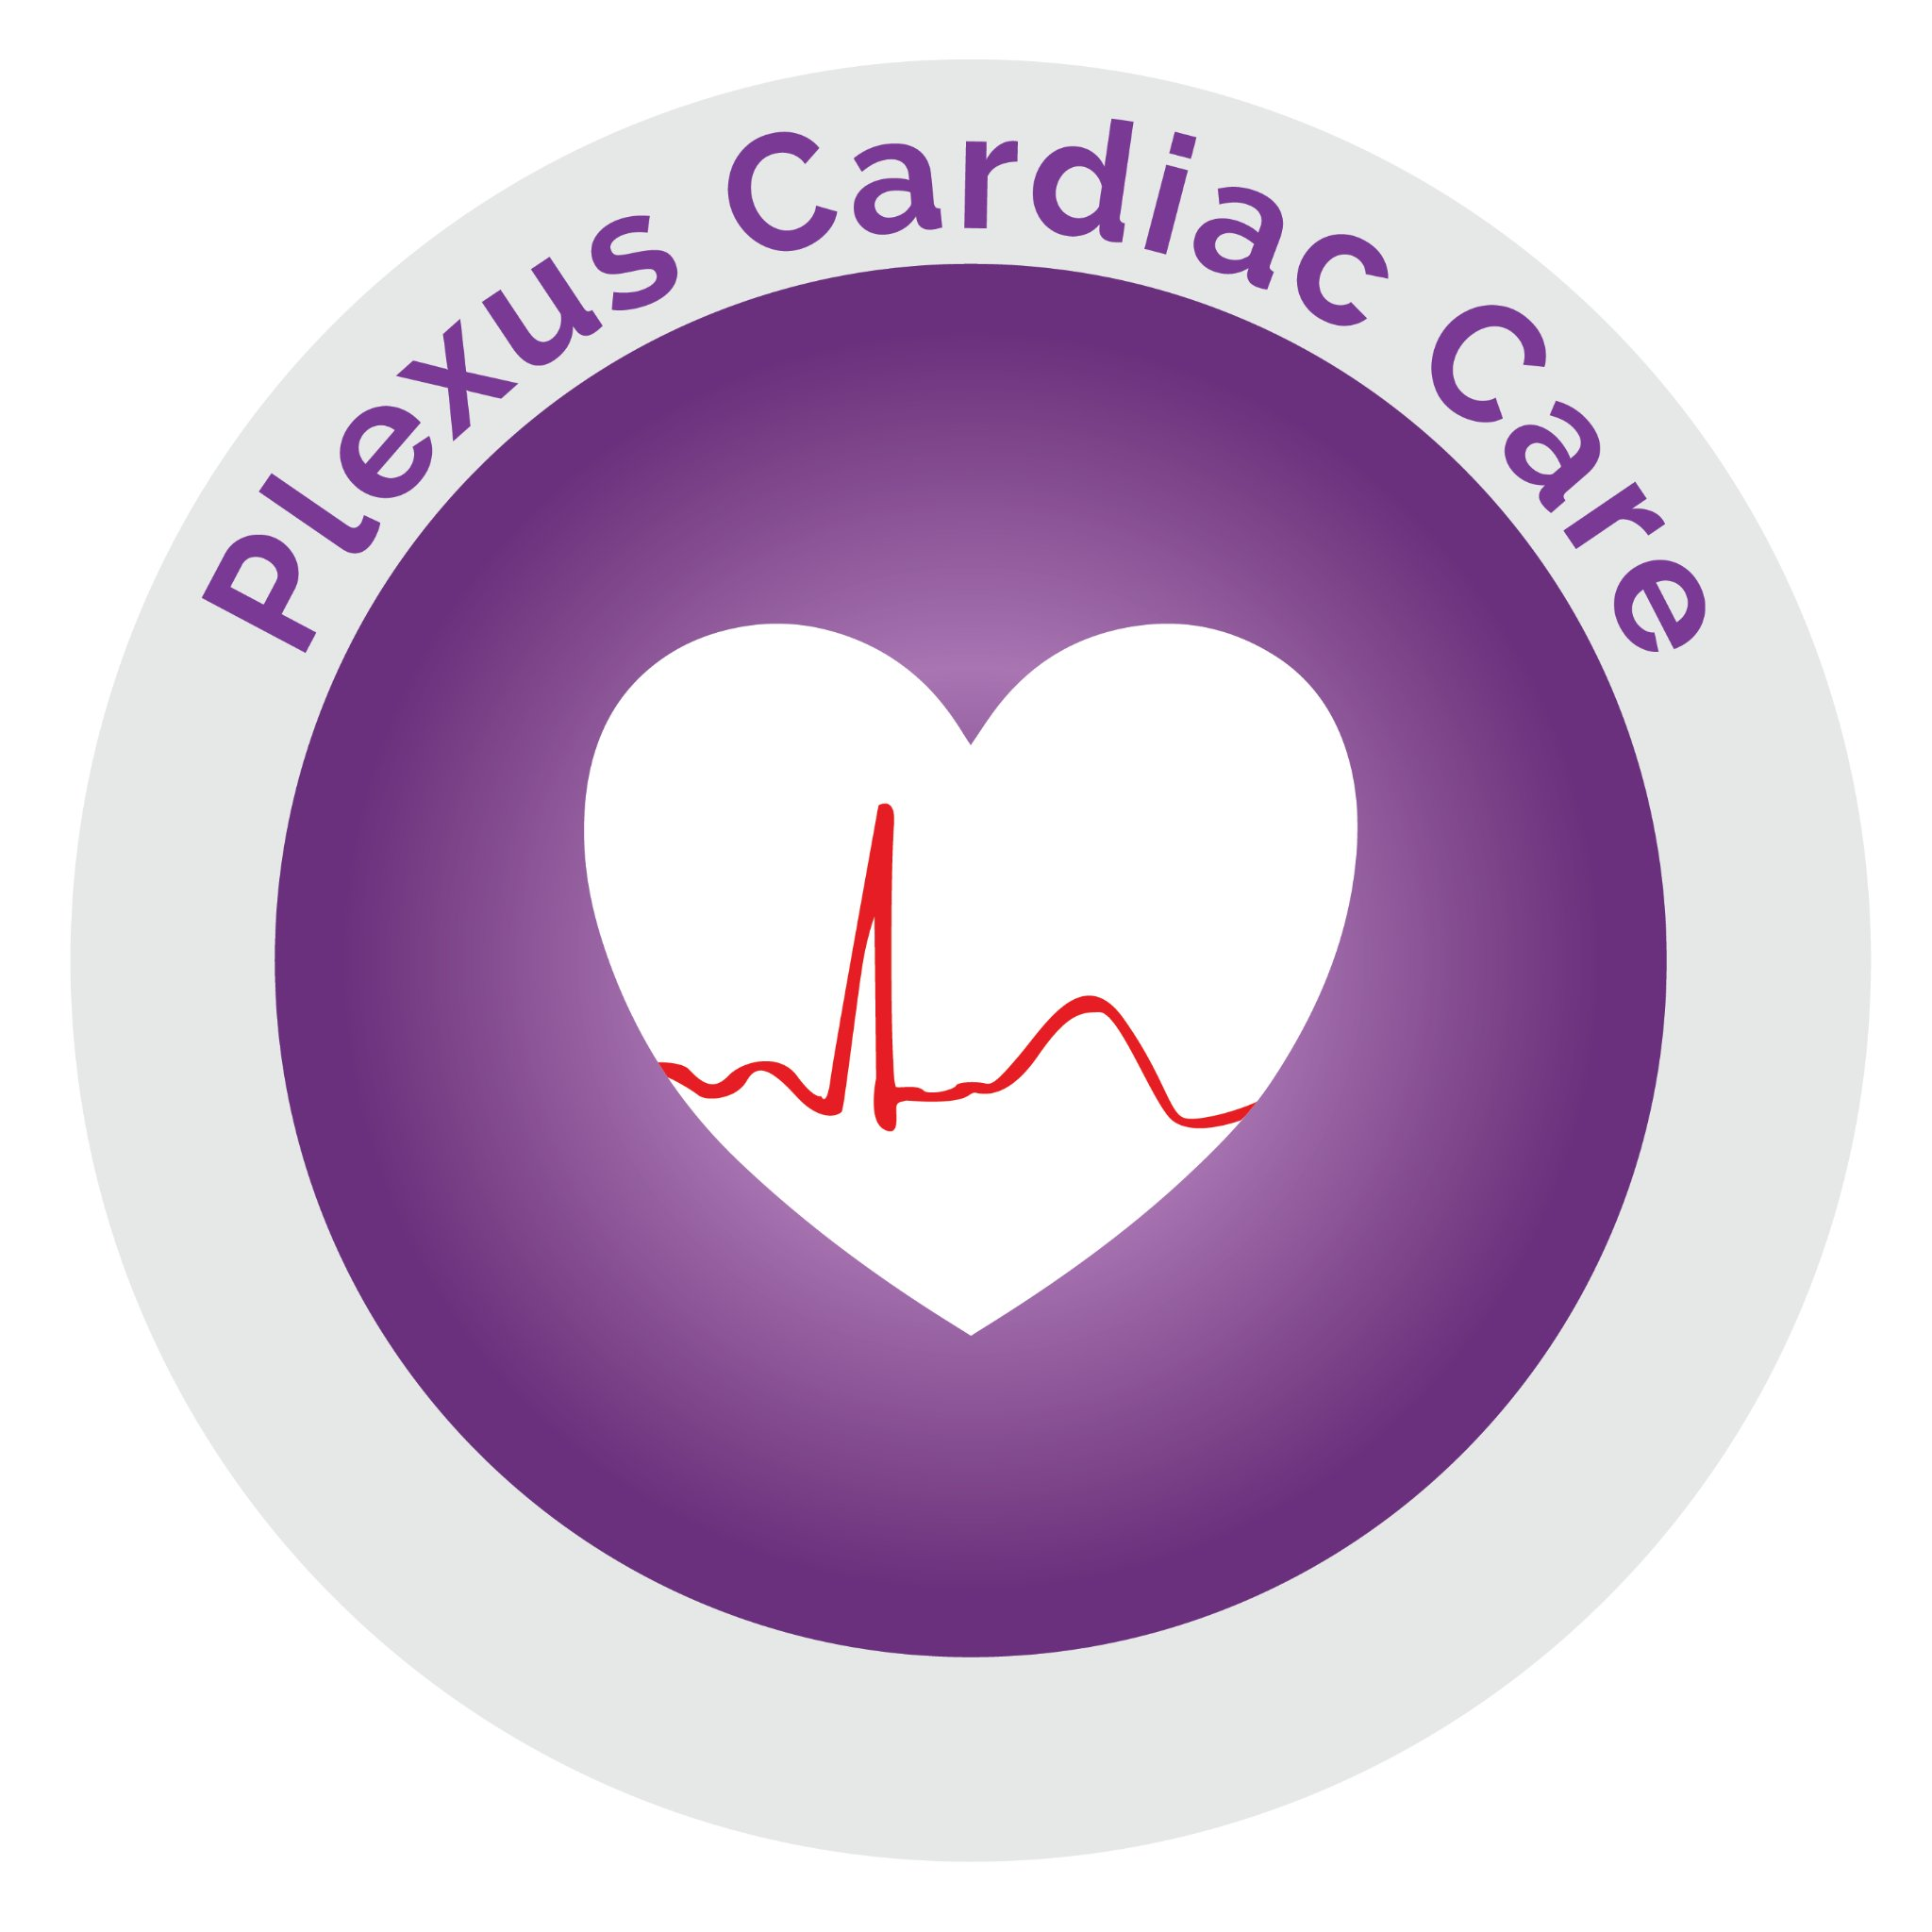 Plexus Cardiac Care on Twitter: